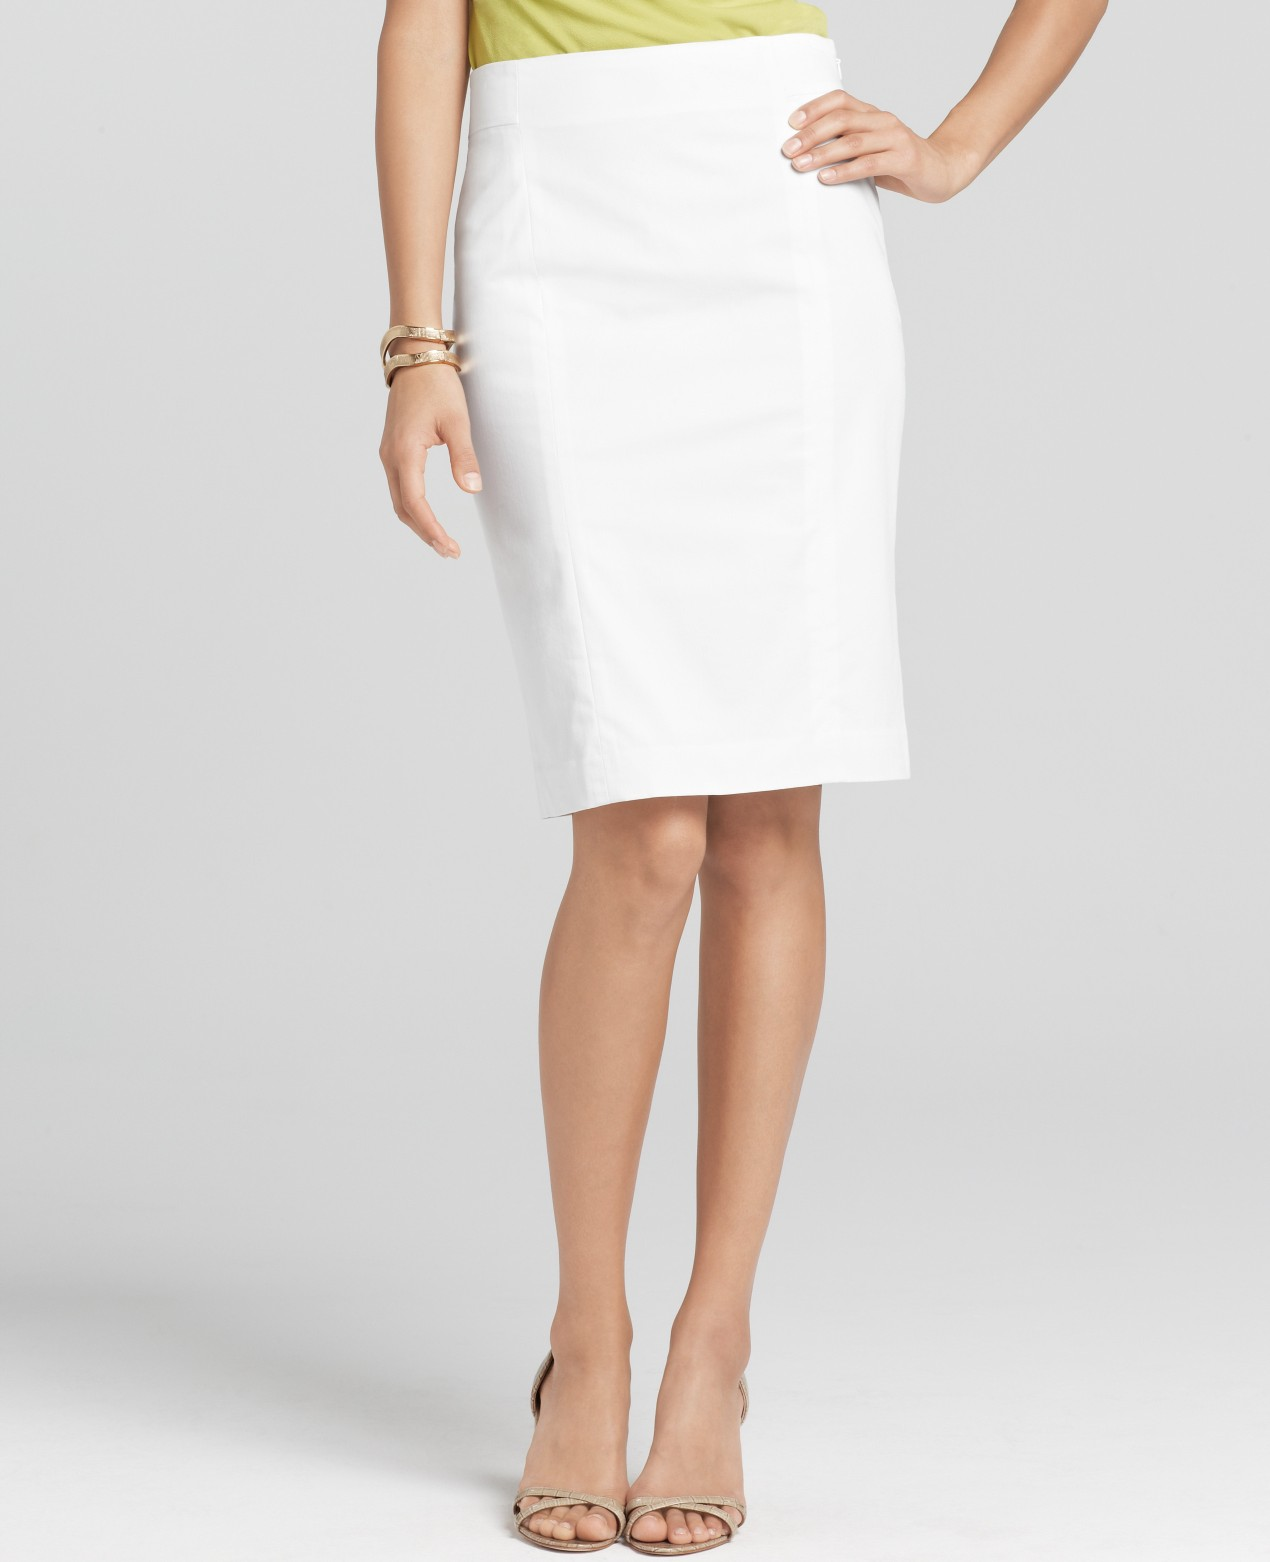 Ann taylor Back Zip Polished Cotton Pencil Skirt in White | Lyst